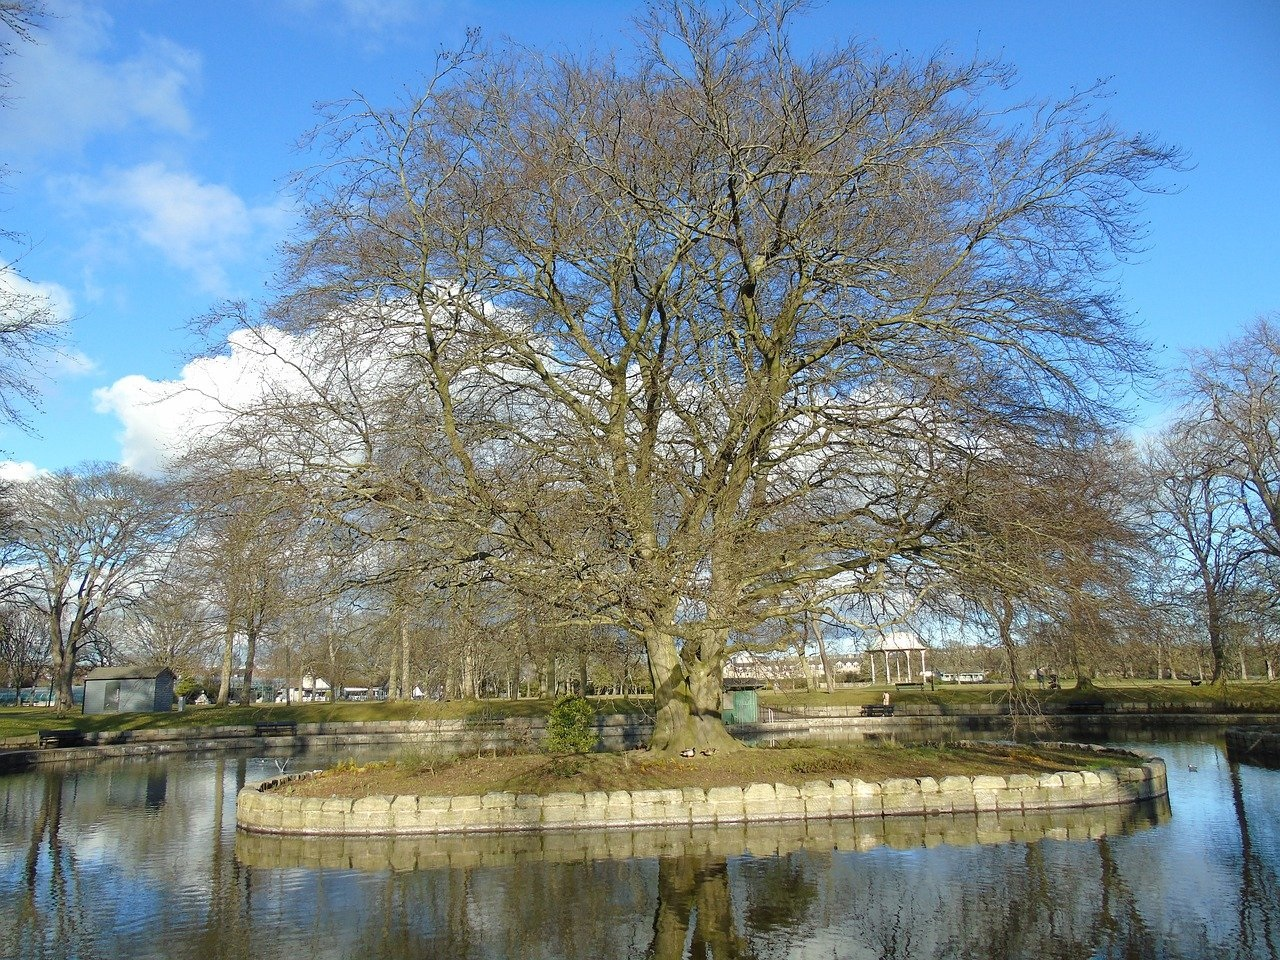 The pond at Duthie Park surrounded by trees